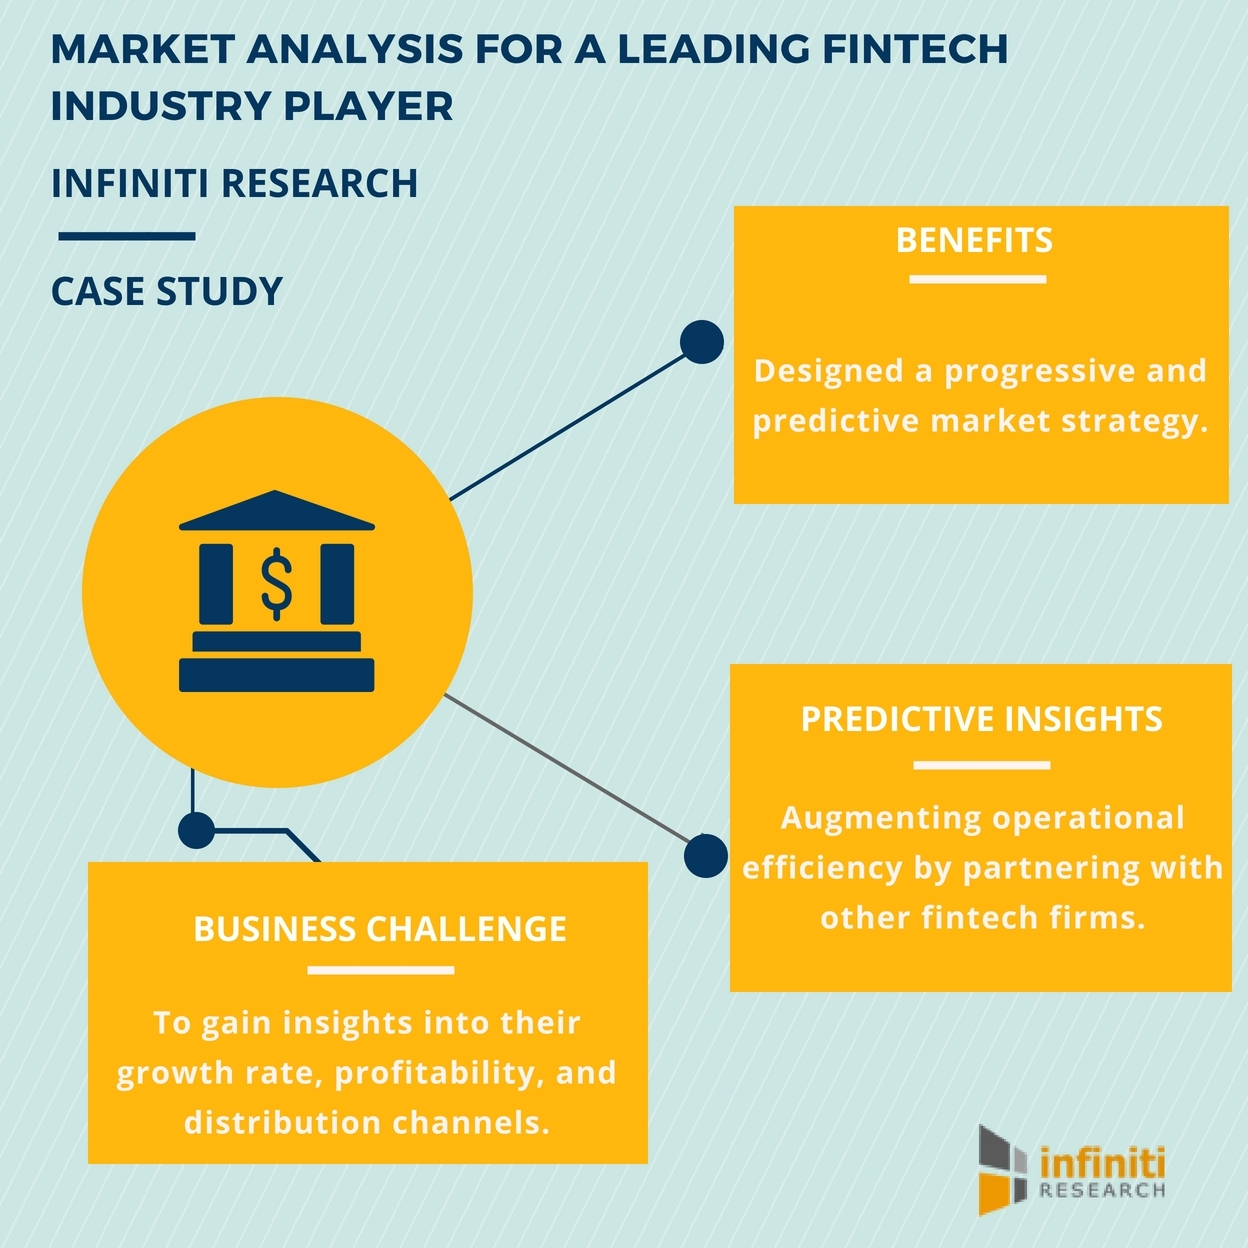 Boosting Market Share And Profit Margins With The Help Of Market Share Analysis A Fintech Case Study By Infiniti Research Business Wire